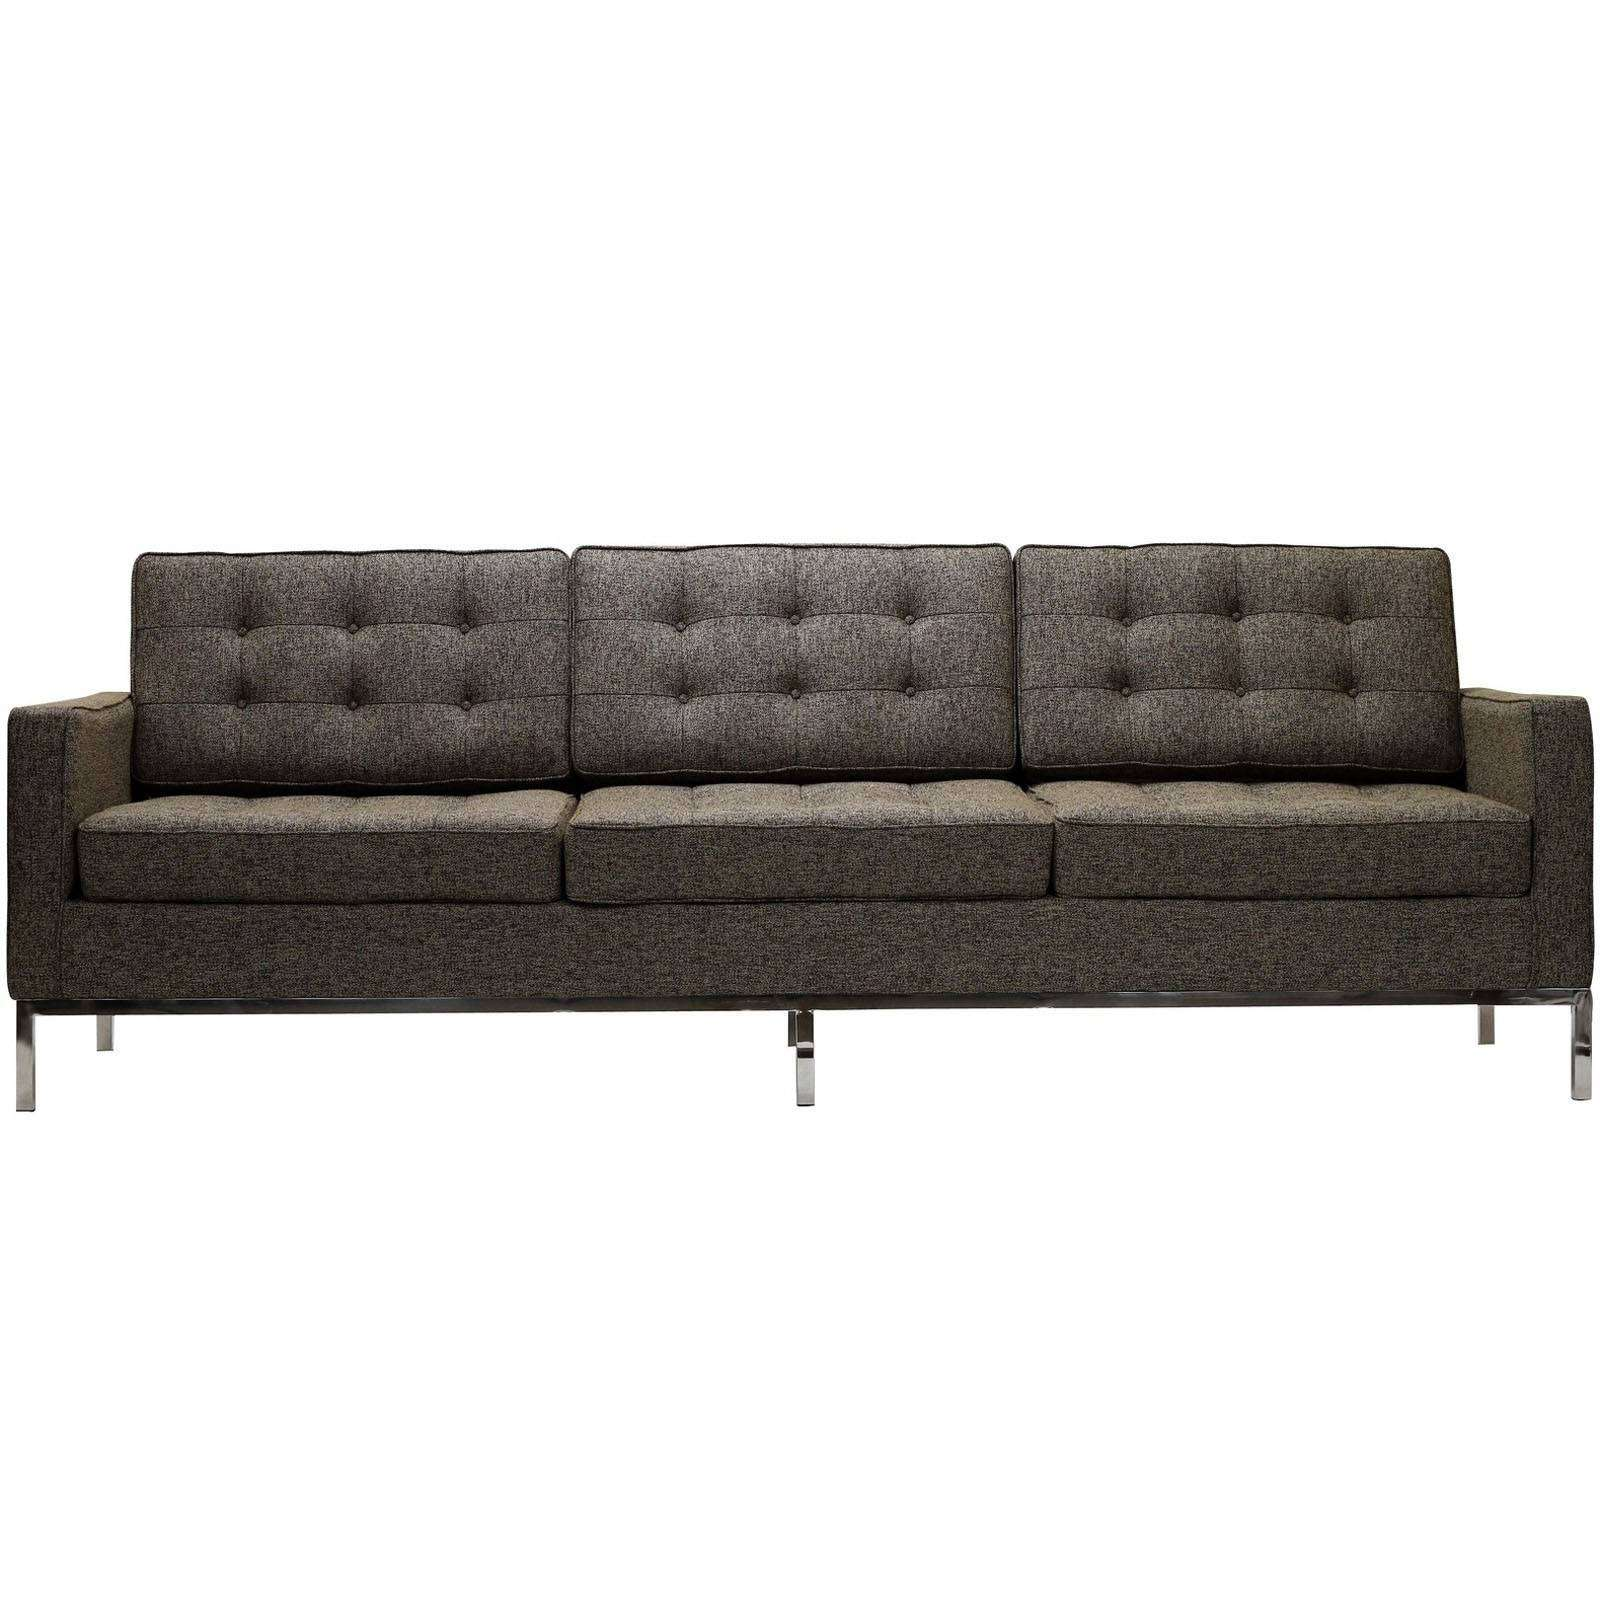 florence knoll style sofa couch wool. Black Bedroom Furniture Sets. Home Design Ideas